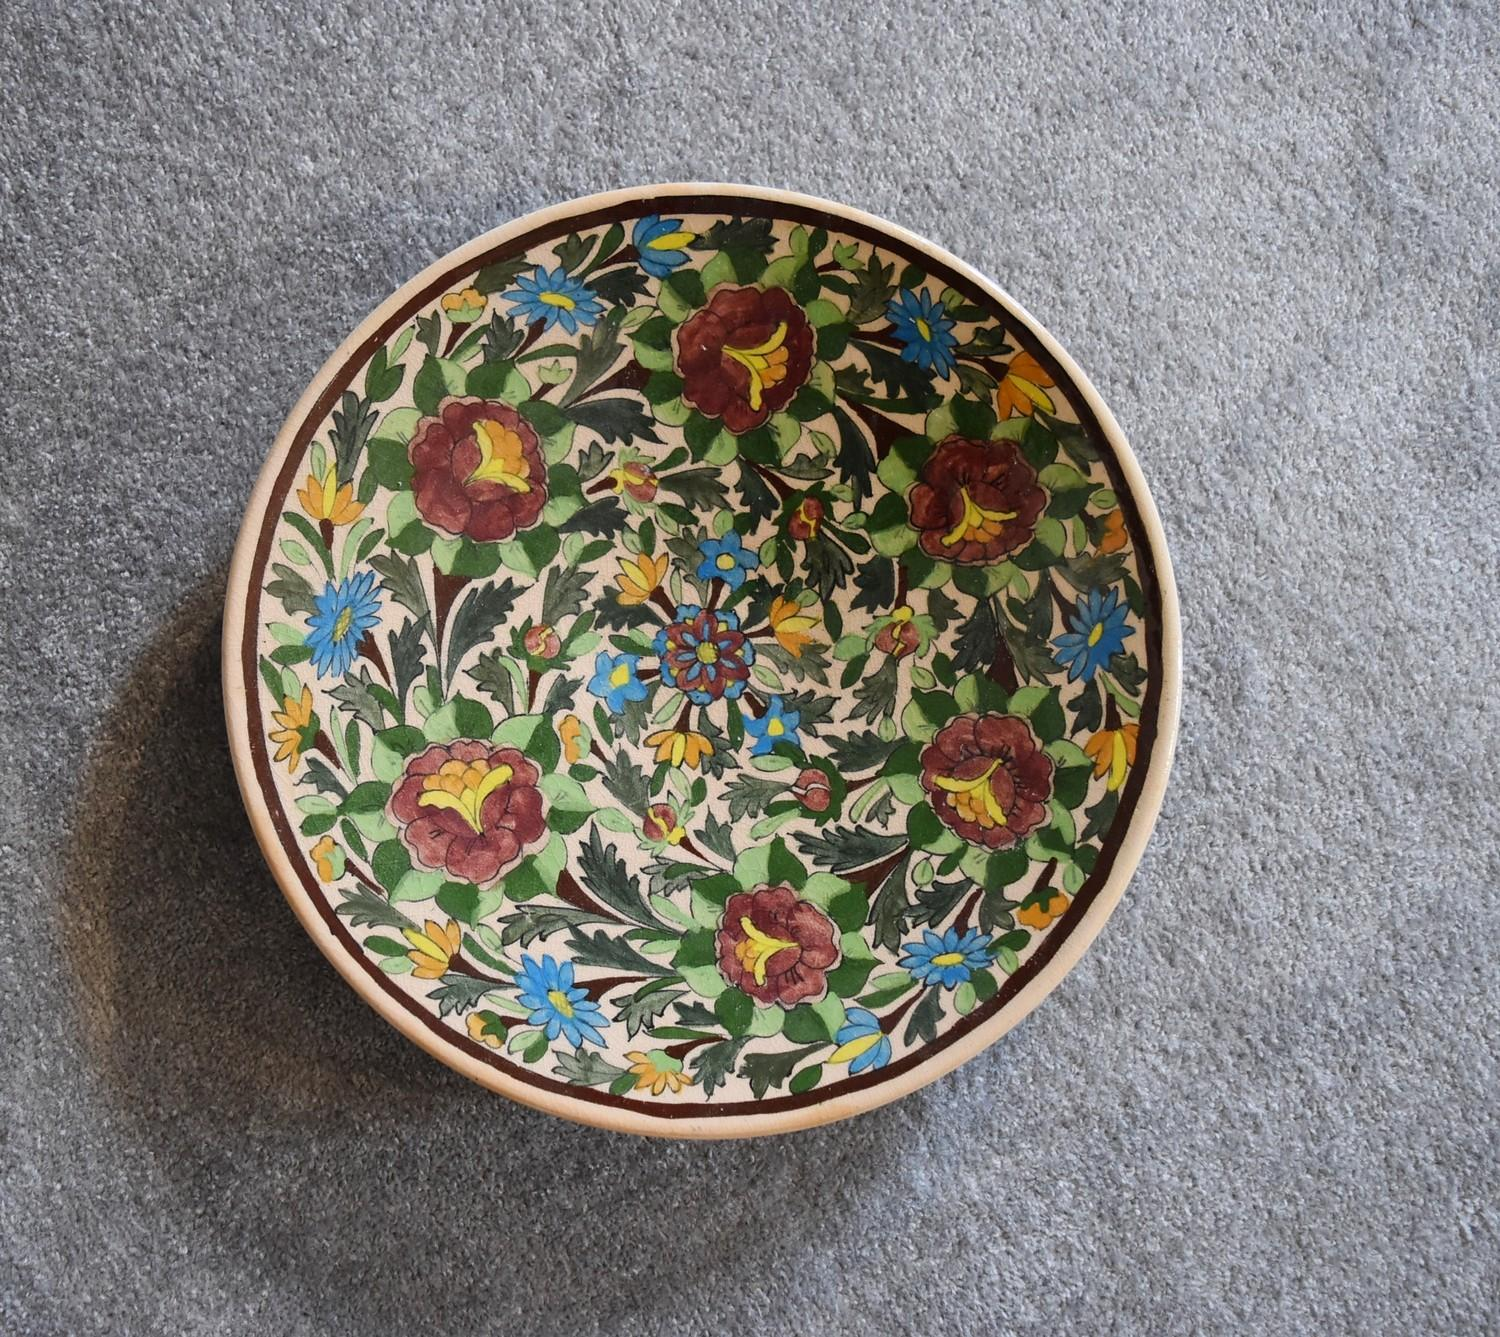 Lot 25 - A large ceramic Persian shallow bowl with allover floral pattern. Dia.40cm